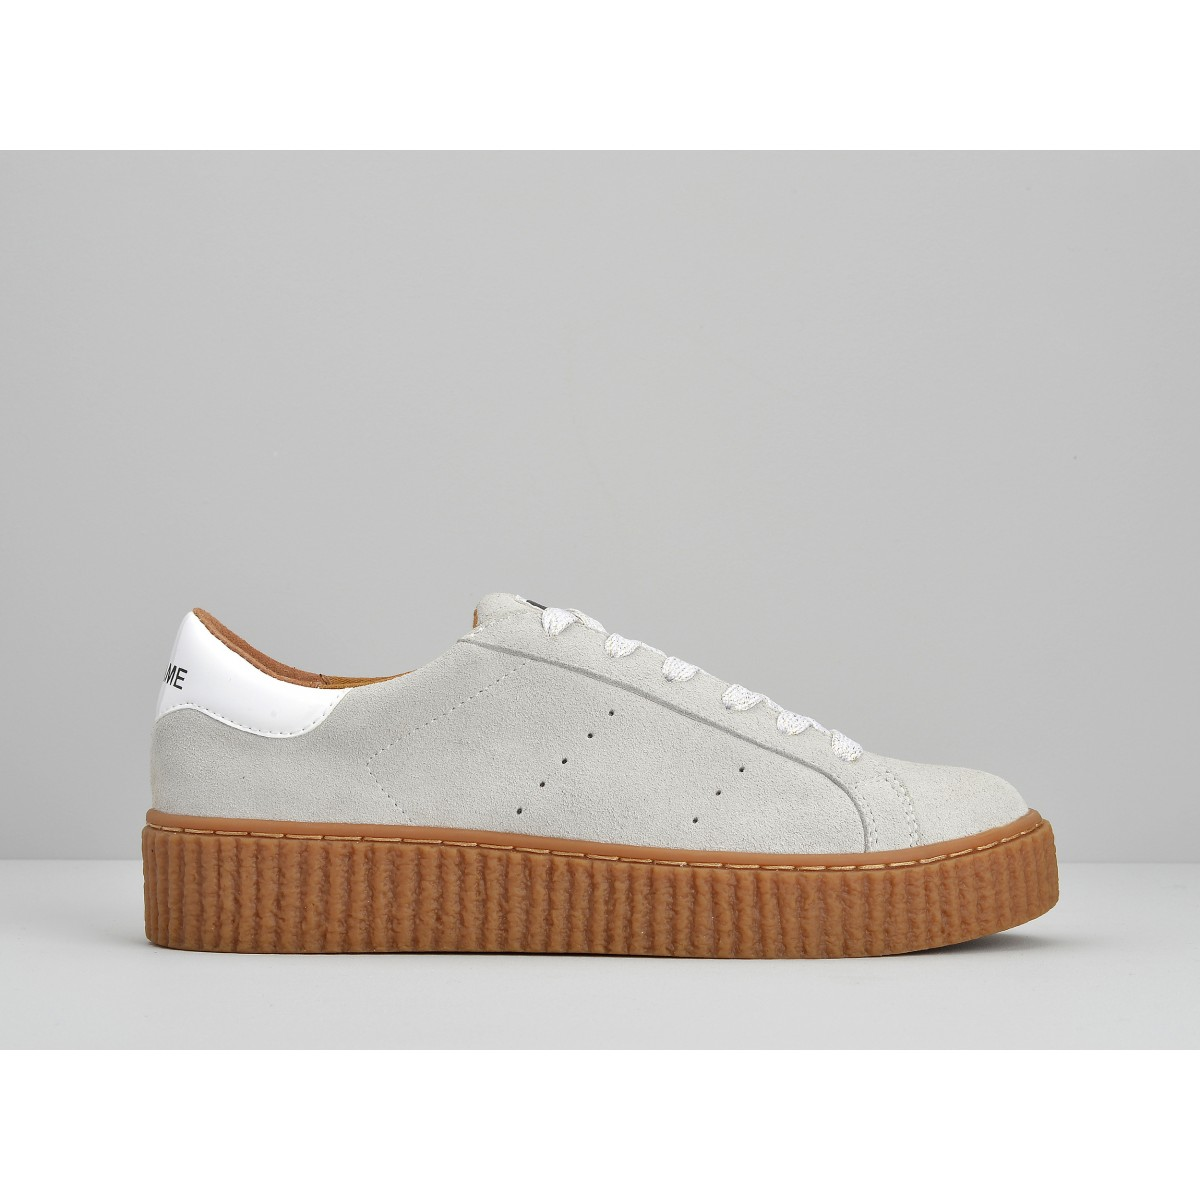 No Name PICADILLY SNEAKER - SUEDE - WHITE SOLE MASTIC